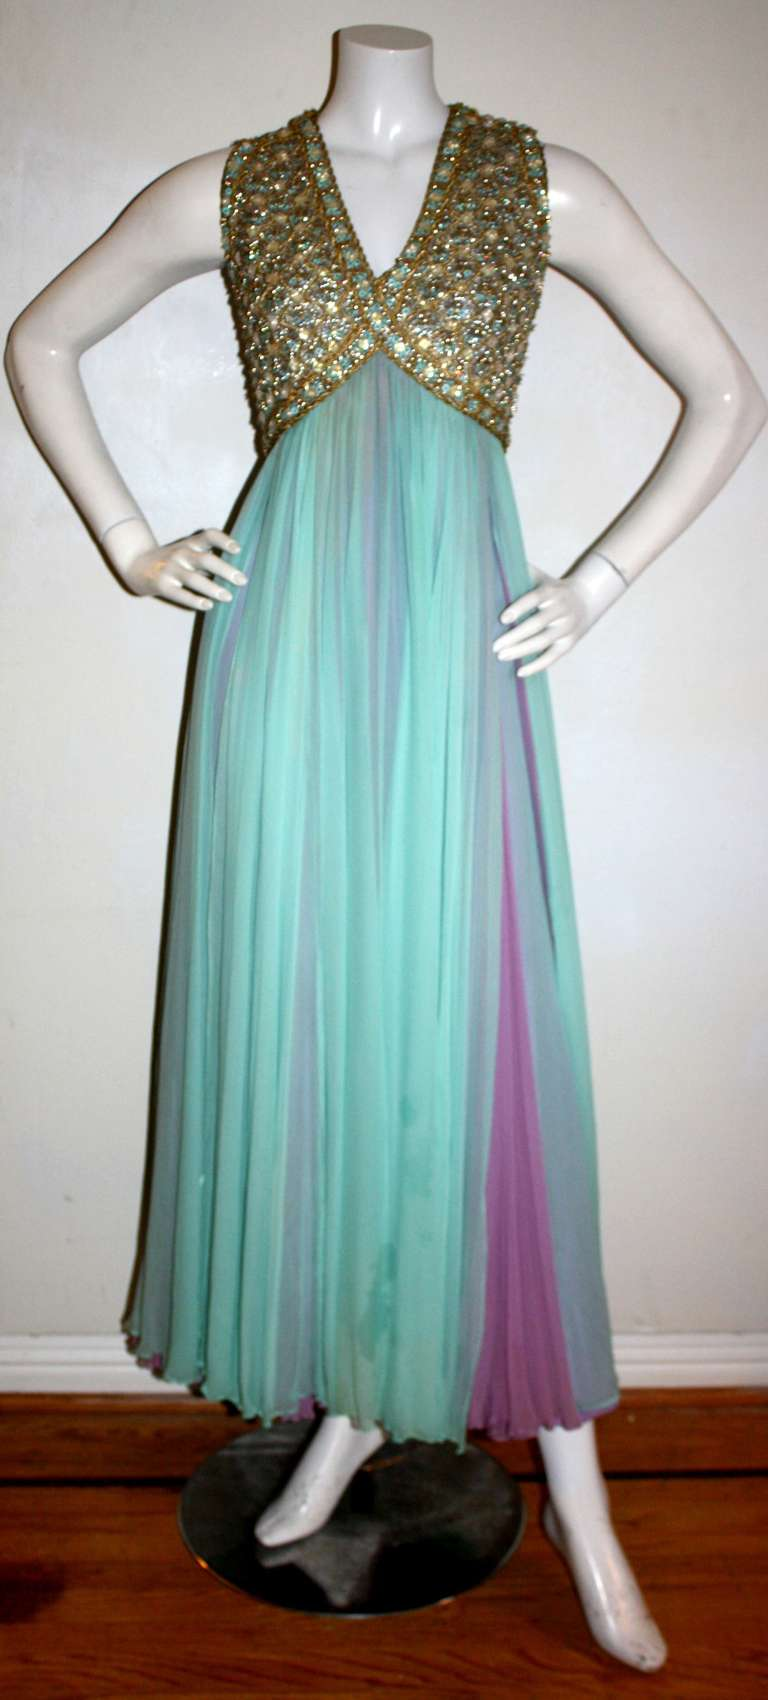 Stunning Vintage Greek Grecian Goddess Heavily Jeweled Chiffon Gown 2